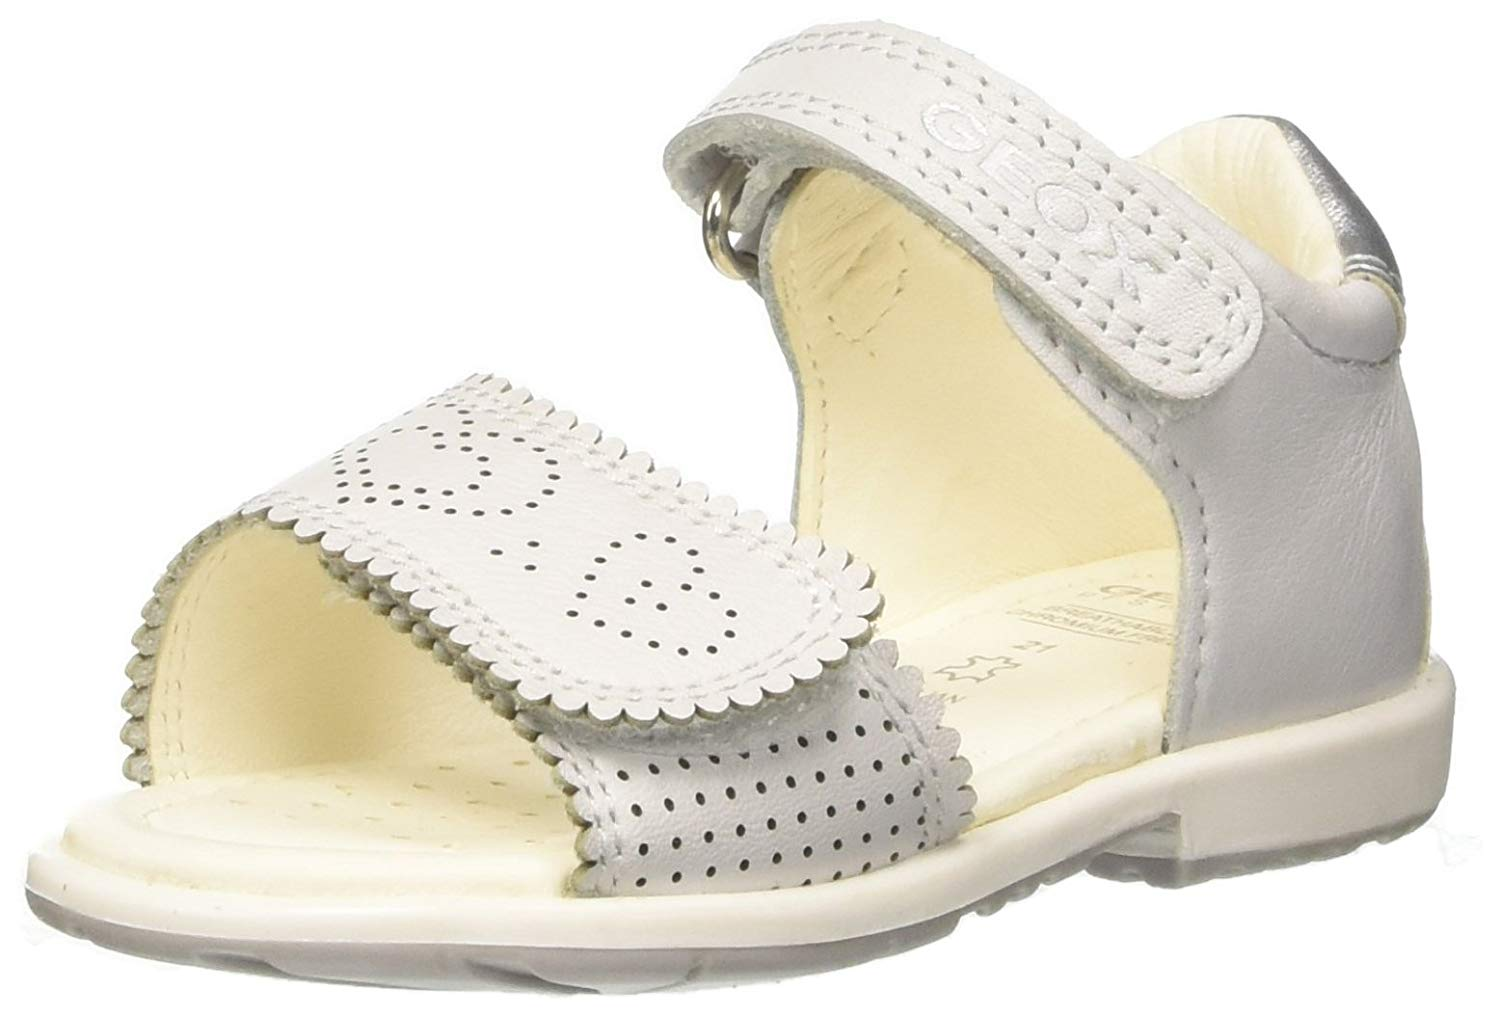 502ae66794e88 Cheap Geox Girls Sandals, find Geox Girls Sandals deals on line at ...